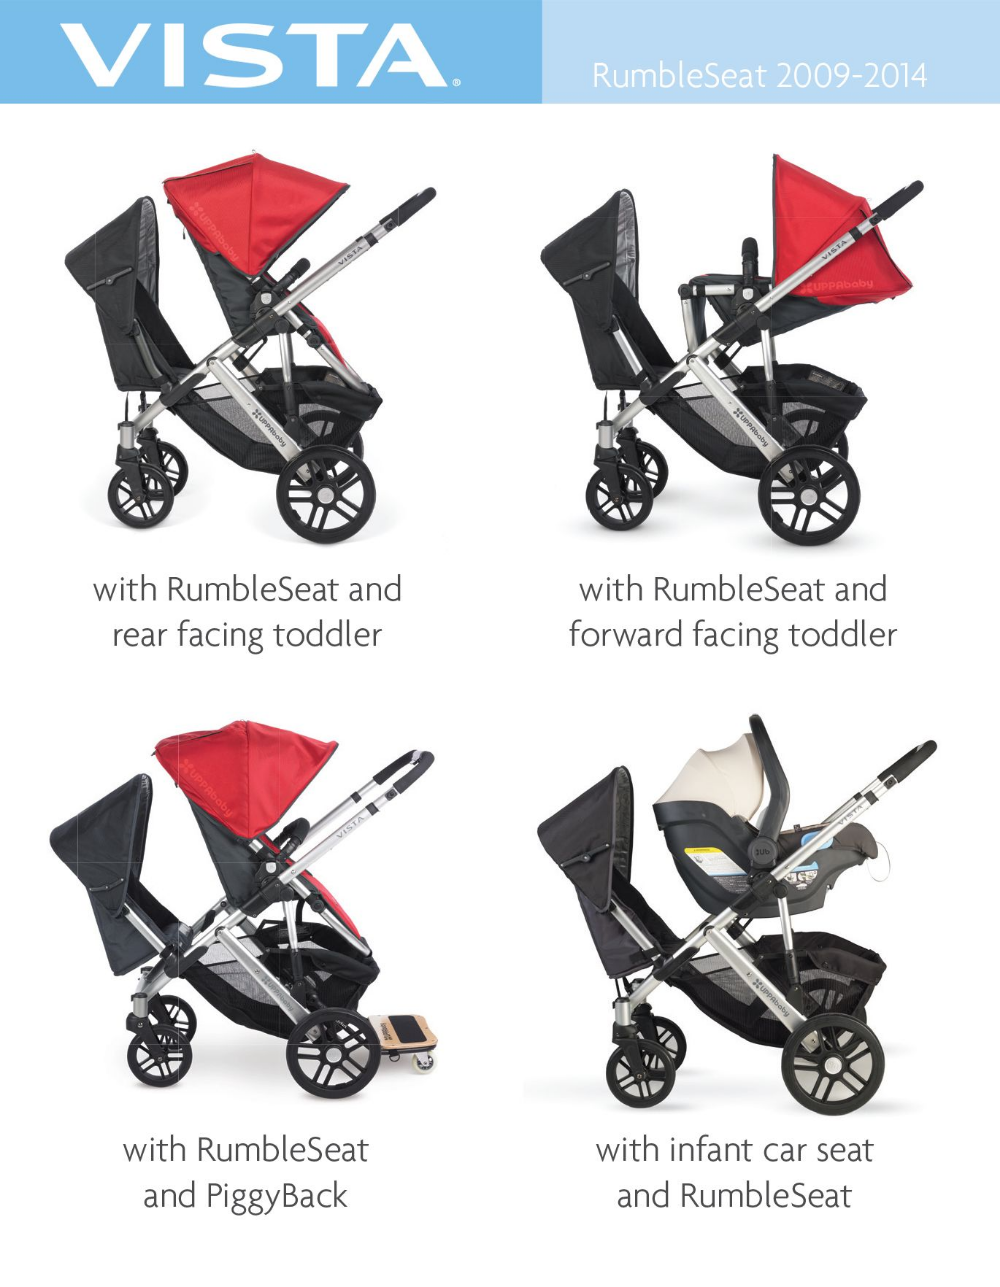 uppababy vista 2014 configurations Google Search in 2020